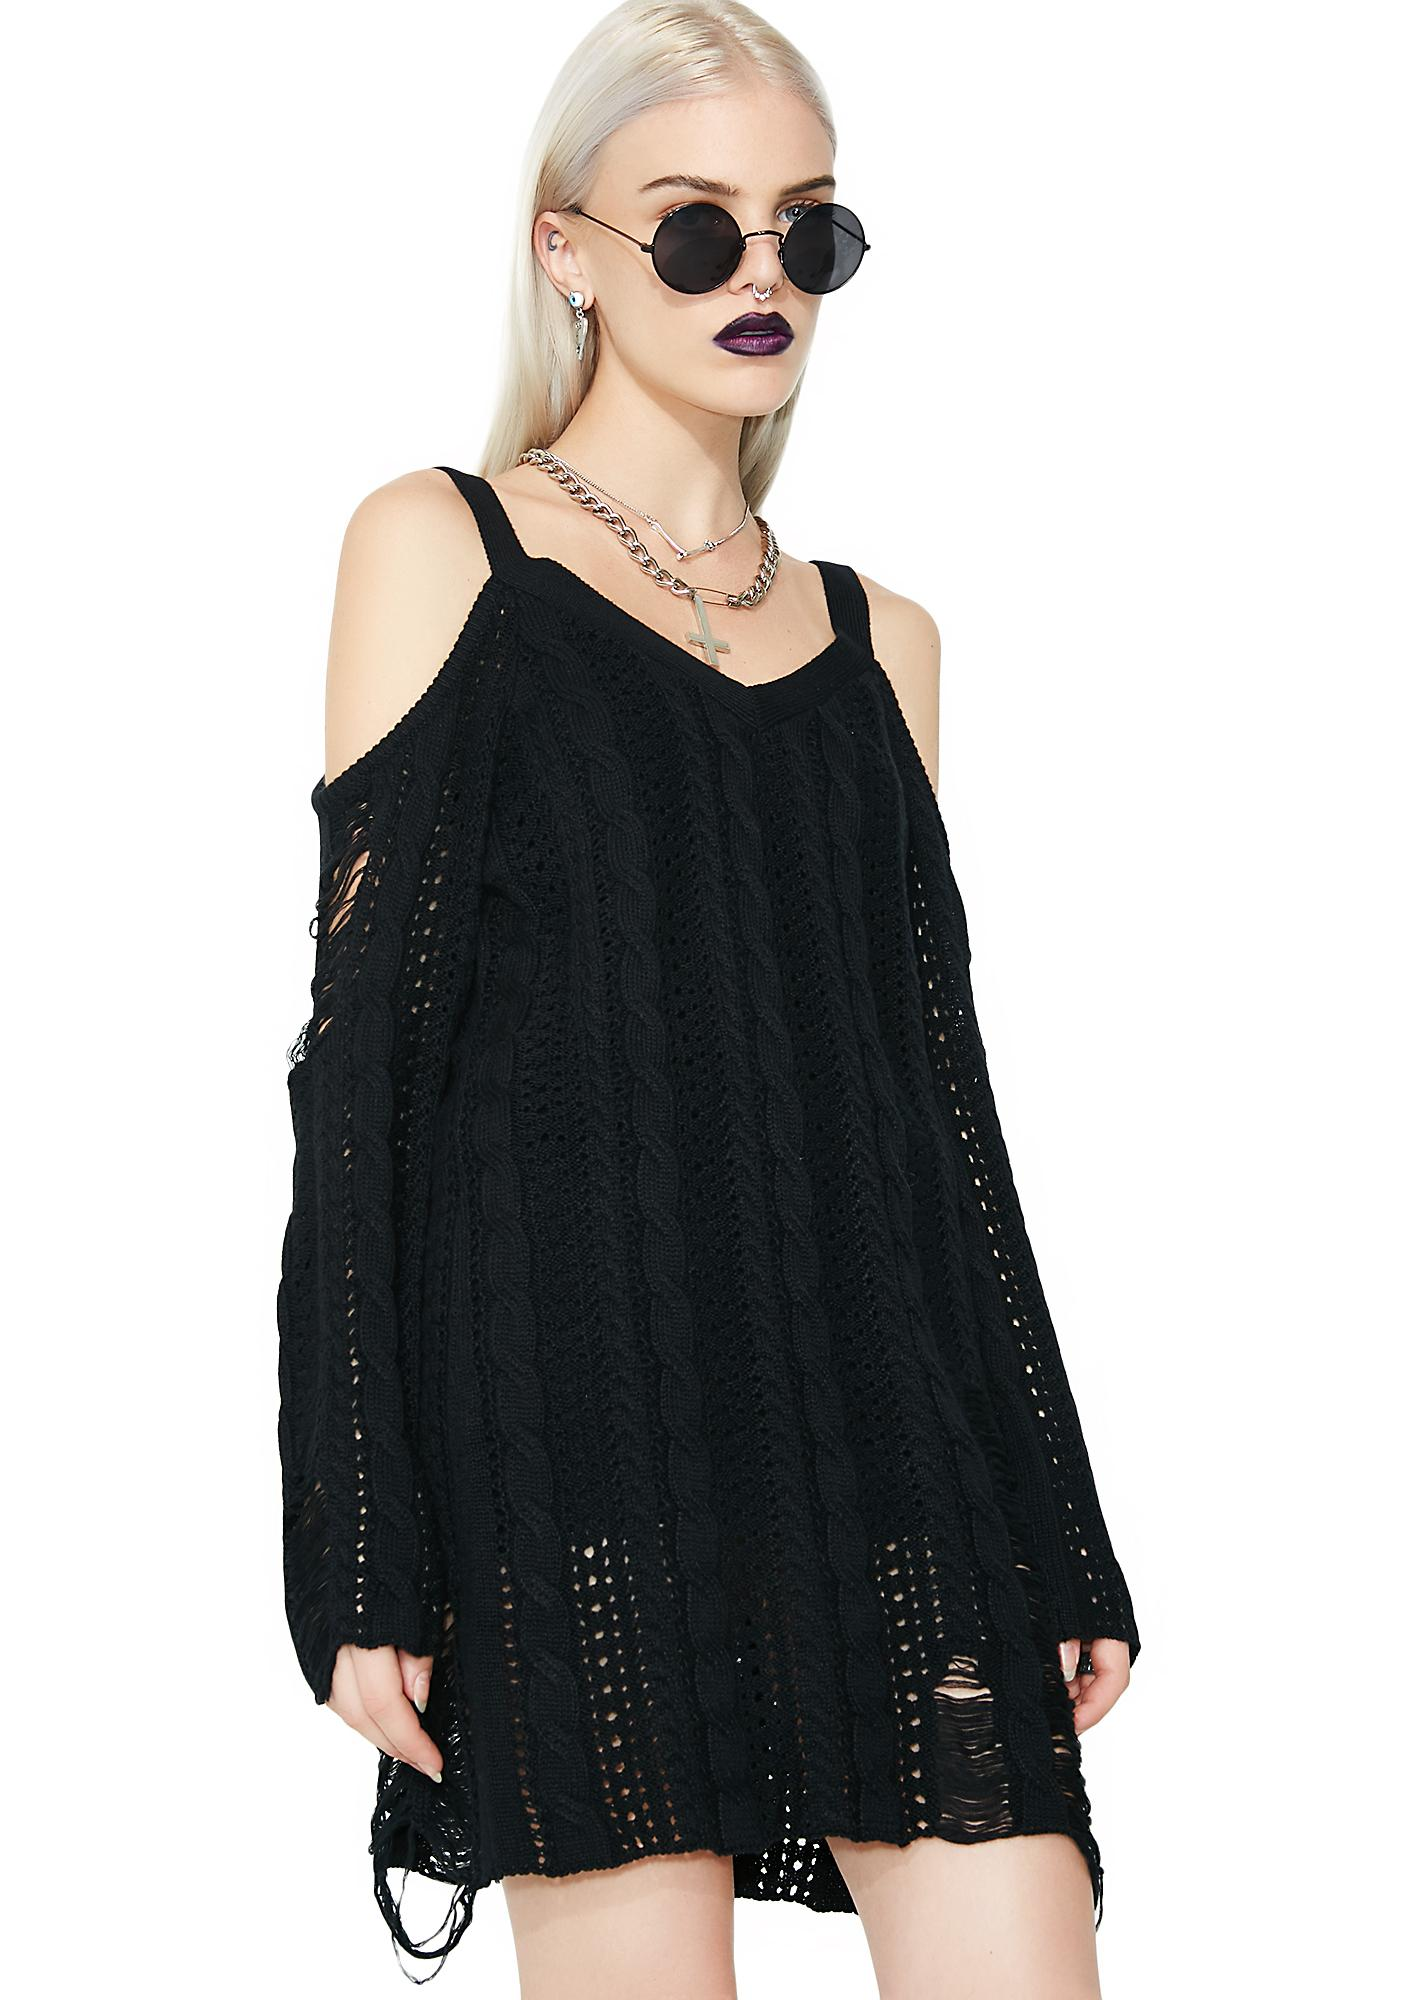 Killstar Bury Bridgette Knit Sweater